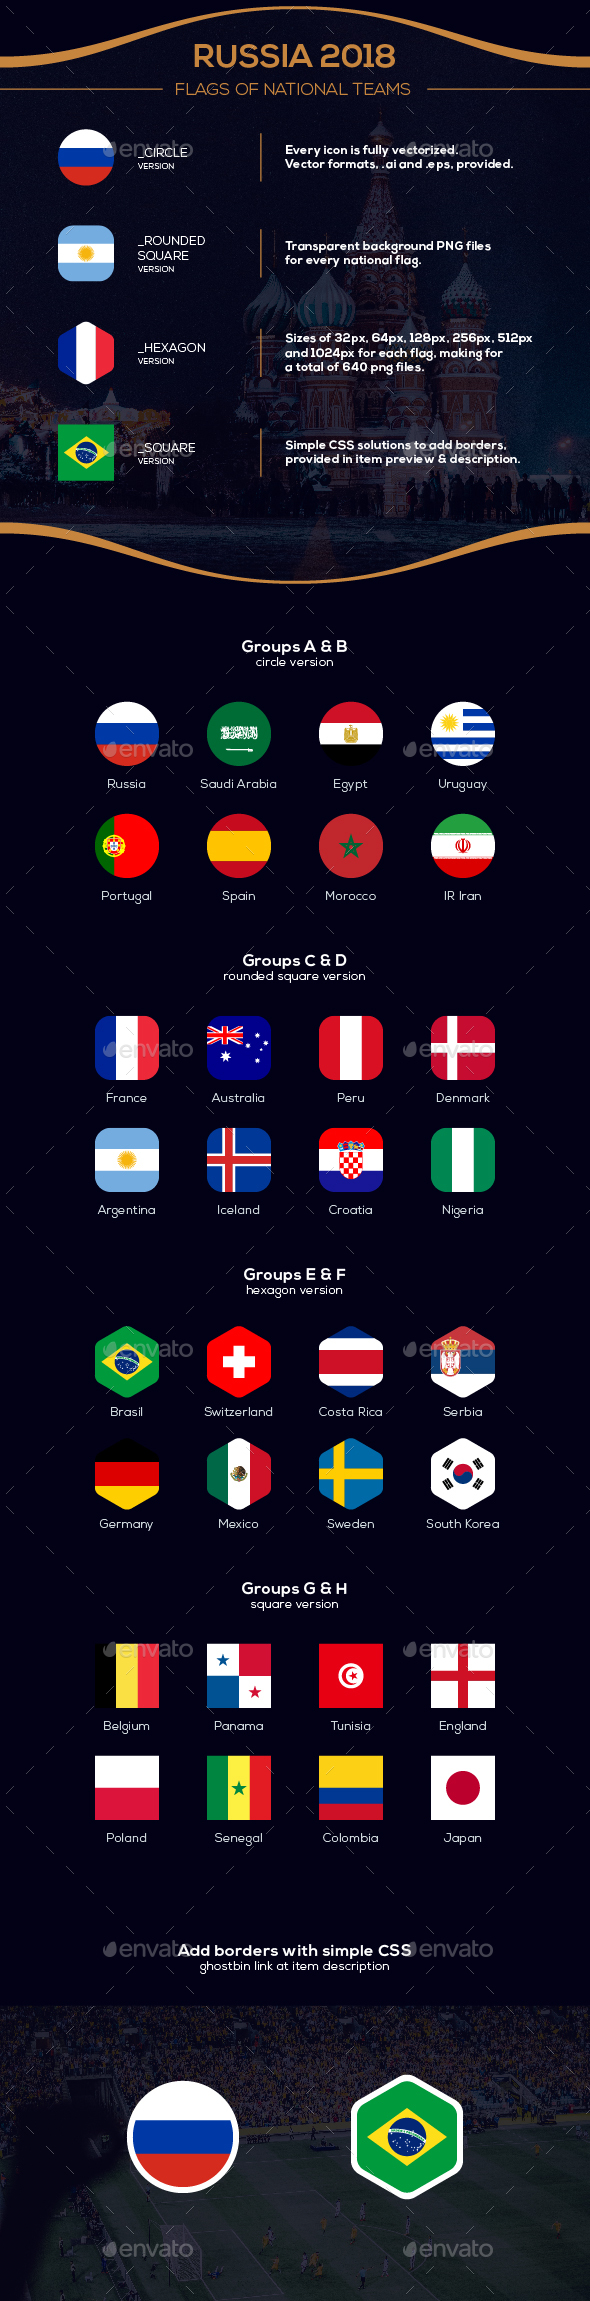 World of Football Russia Cup 2018 - Flag Icons - Web Icons